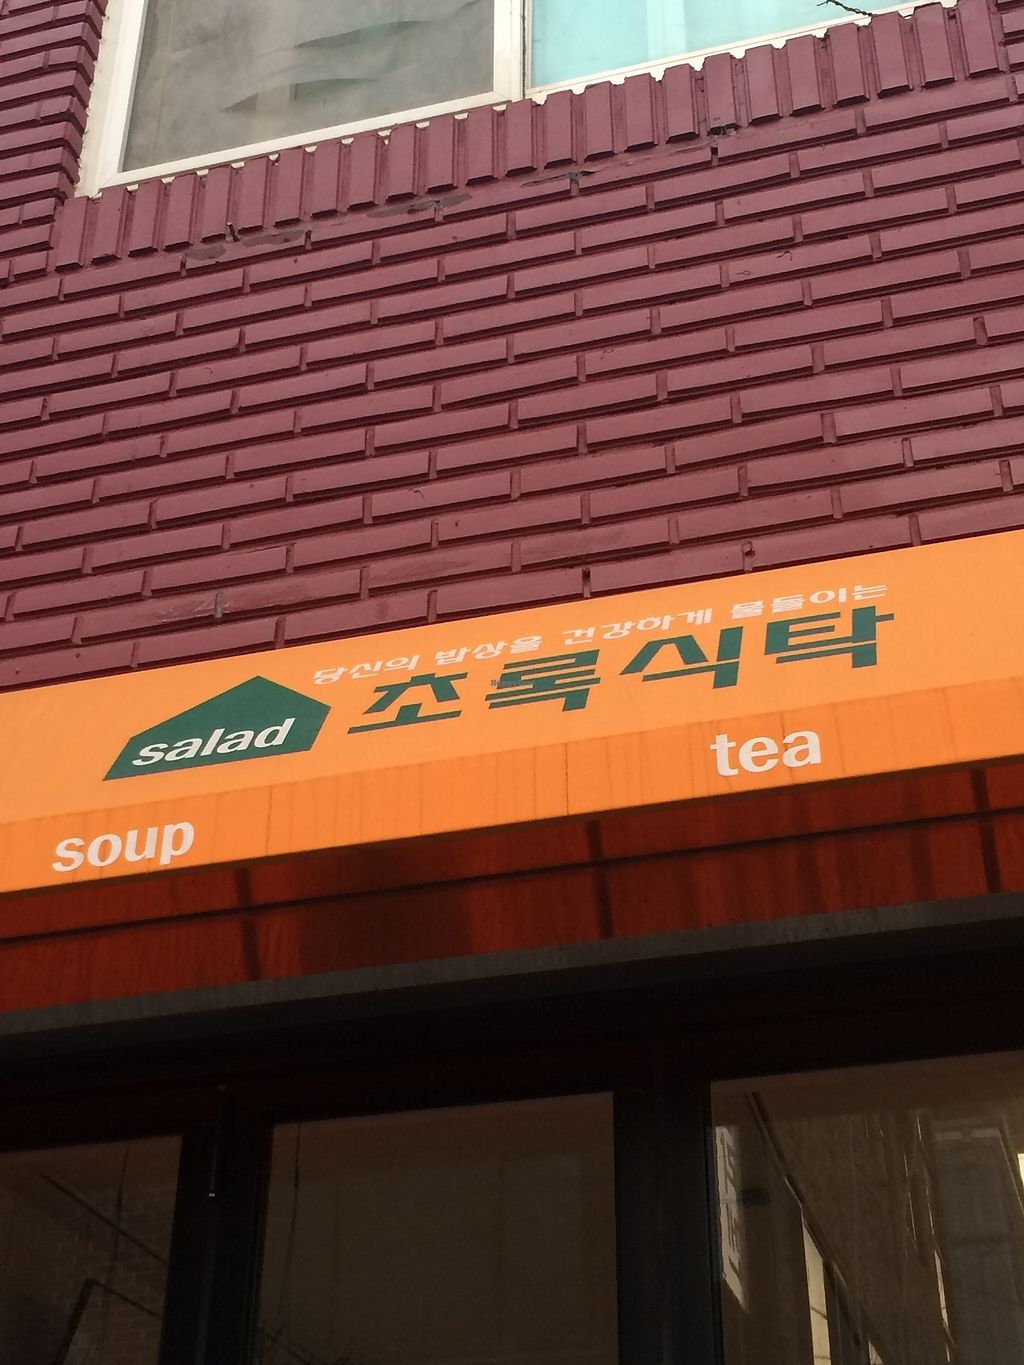 """Photo of Green Table - 초록식탁  by <a href=""""/members/profile/veglover89"""">veglover89</a> <br/>Restaurant  <br/> November 2, 2017  - <a href='/contact/abuse/image/103478/321094'>Report</a>"""